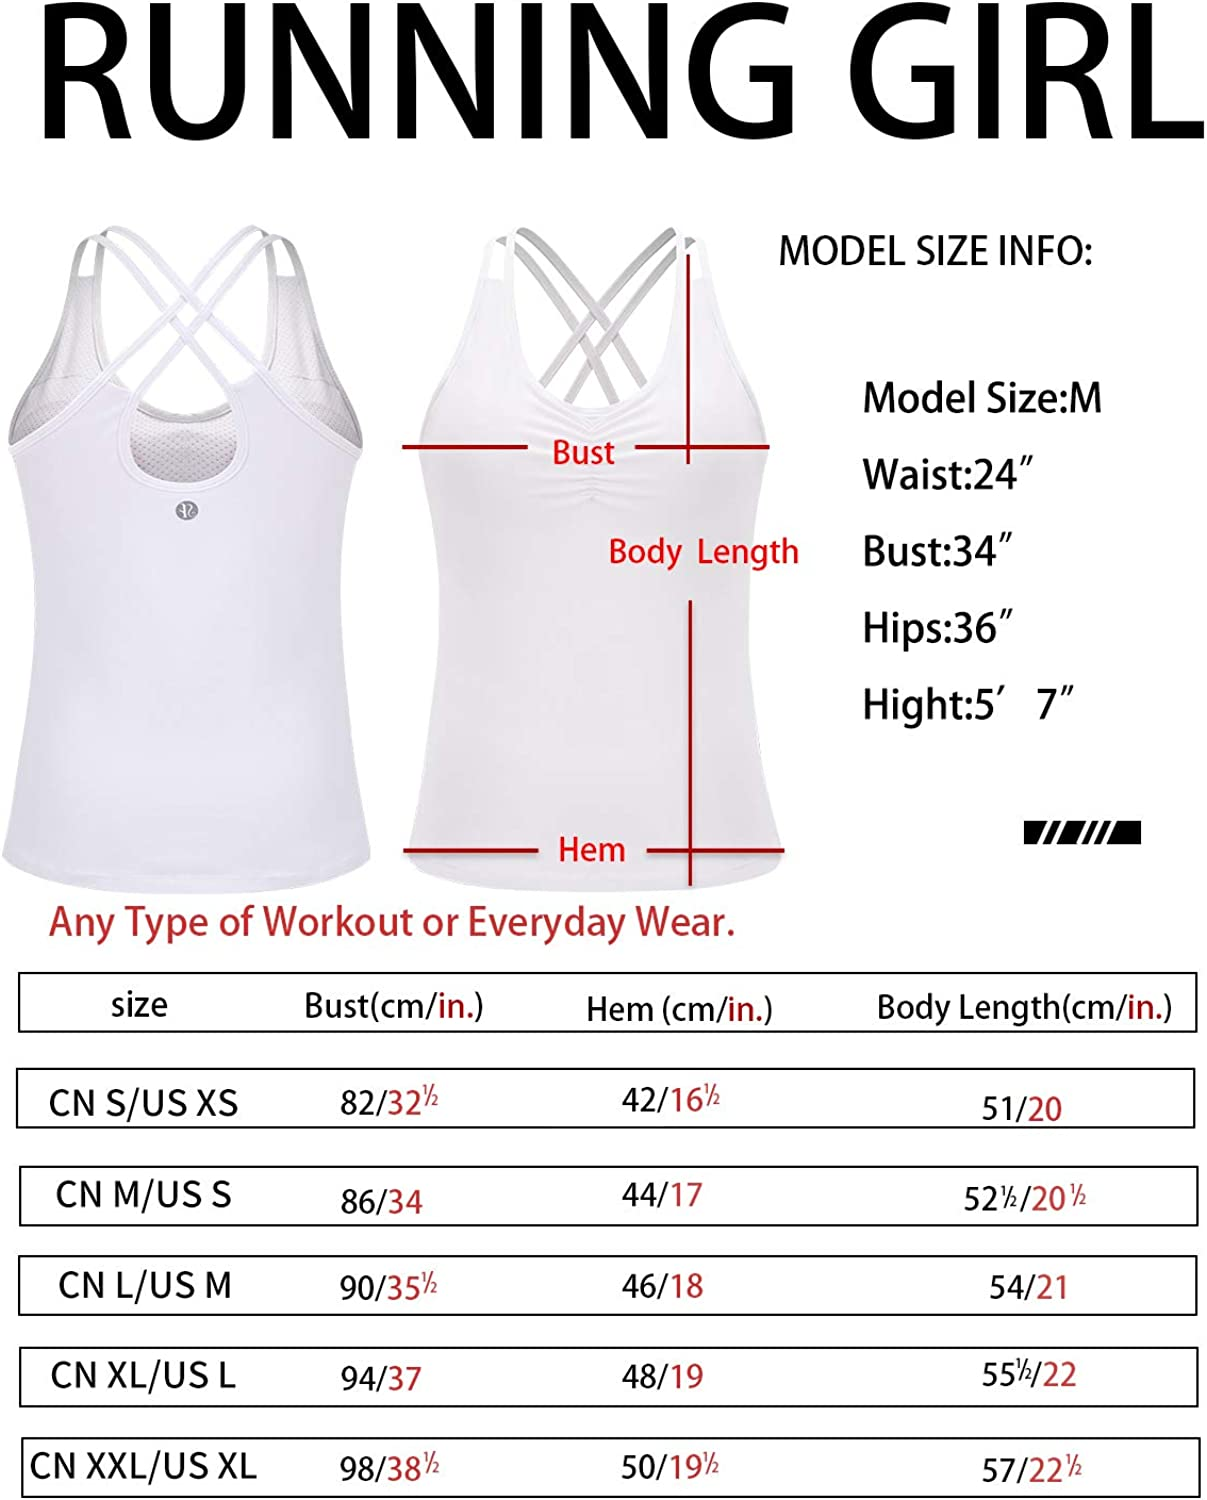 RUNNING GIRL Yoga Tank Tops for Women Built in Shelf Bra B//C Cups Strappy Back Activewear Workout Compression Tops